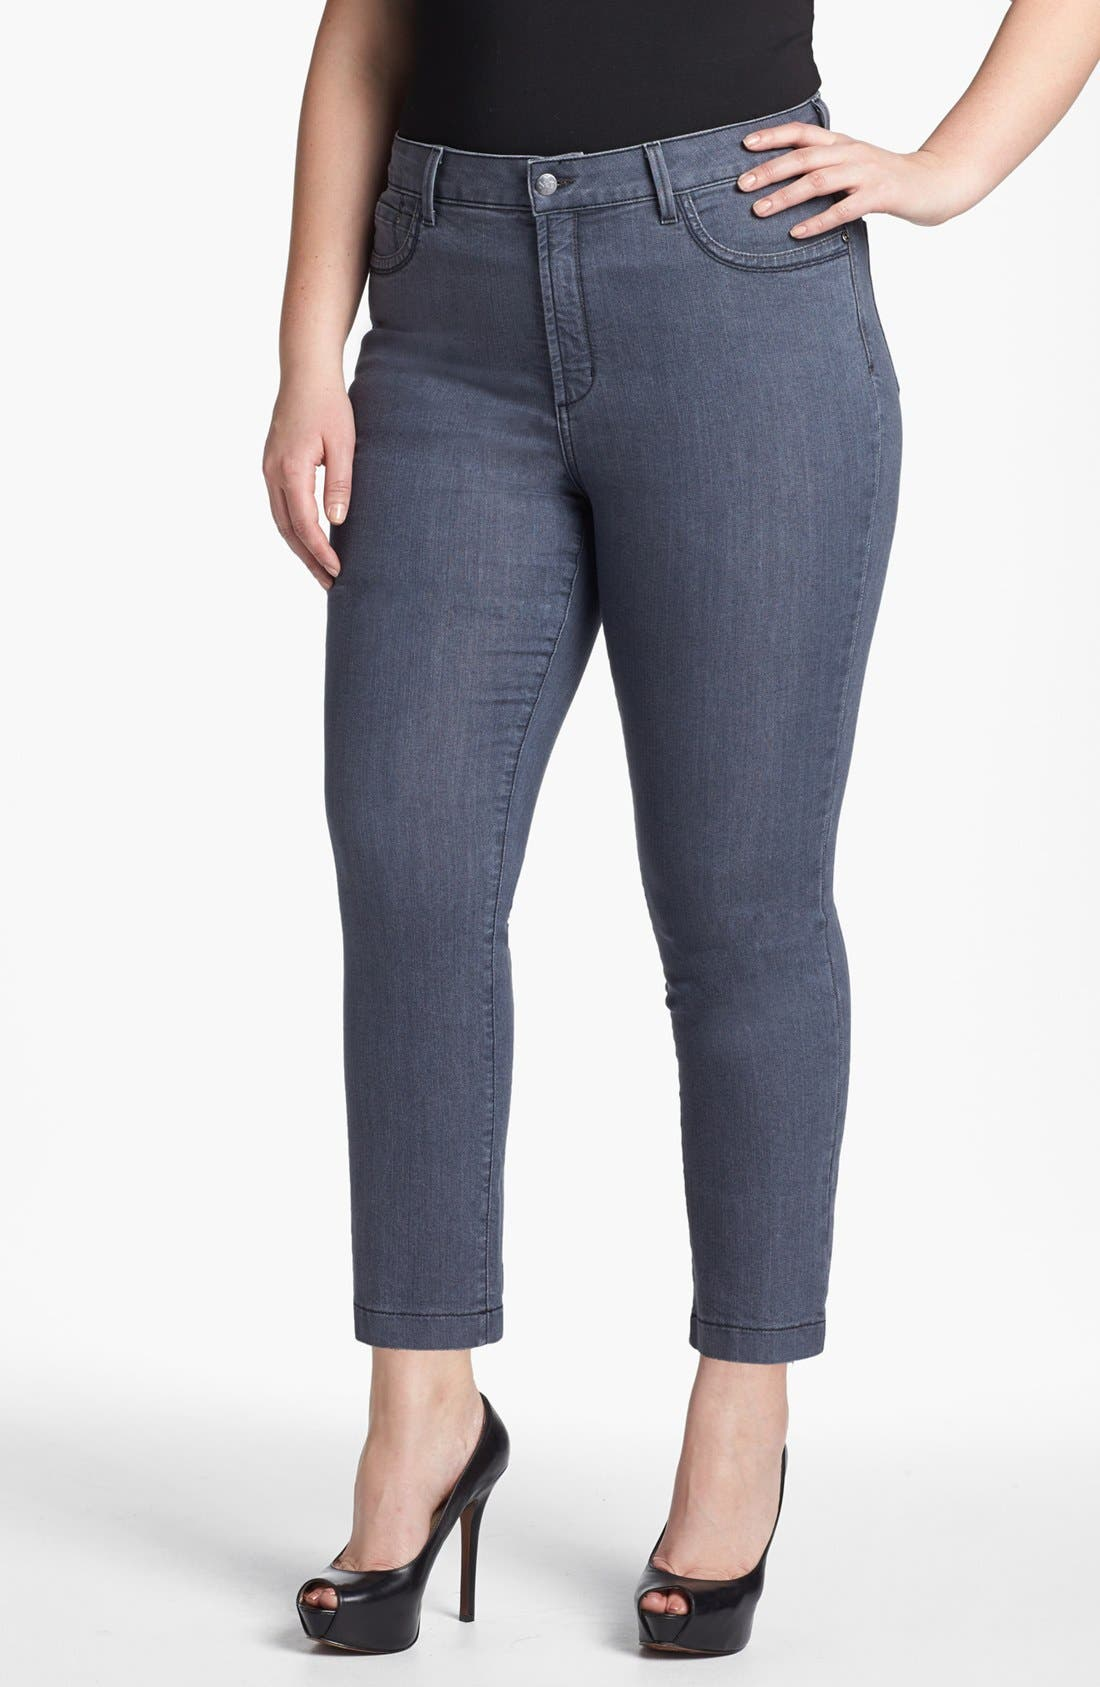 Main Image - NYDJ 'Audrey' Skinny Ankle Jeans (Plus Size)